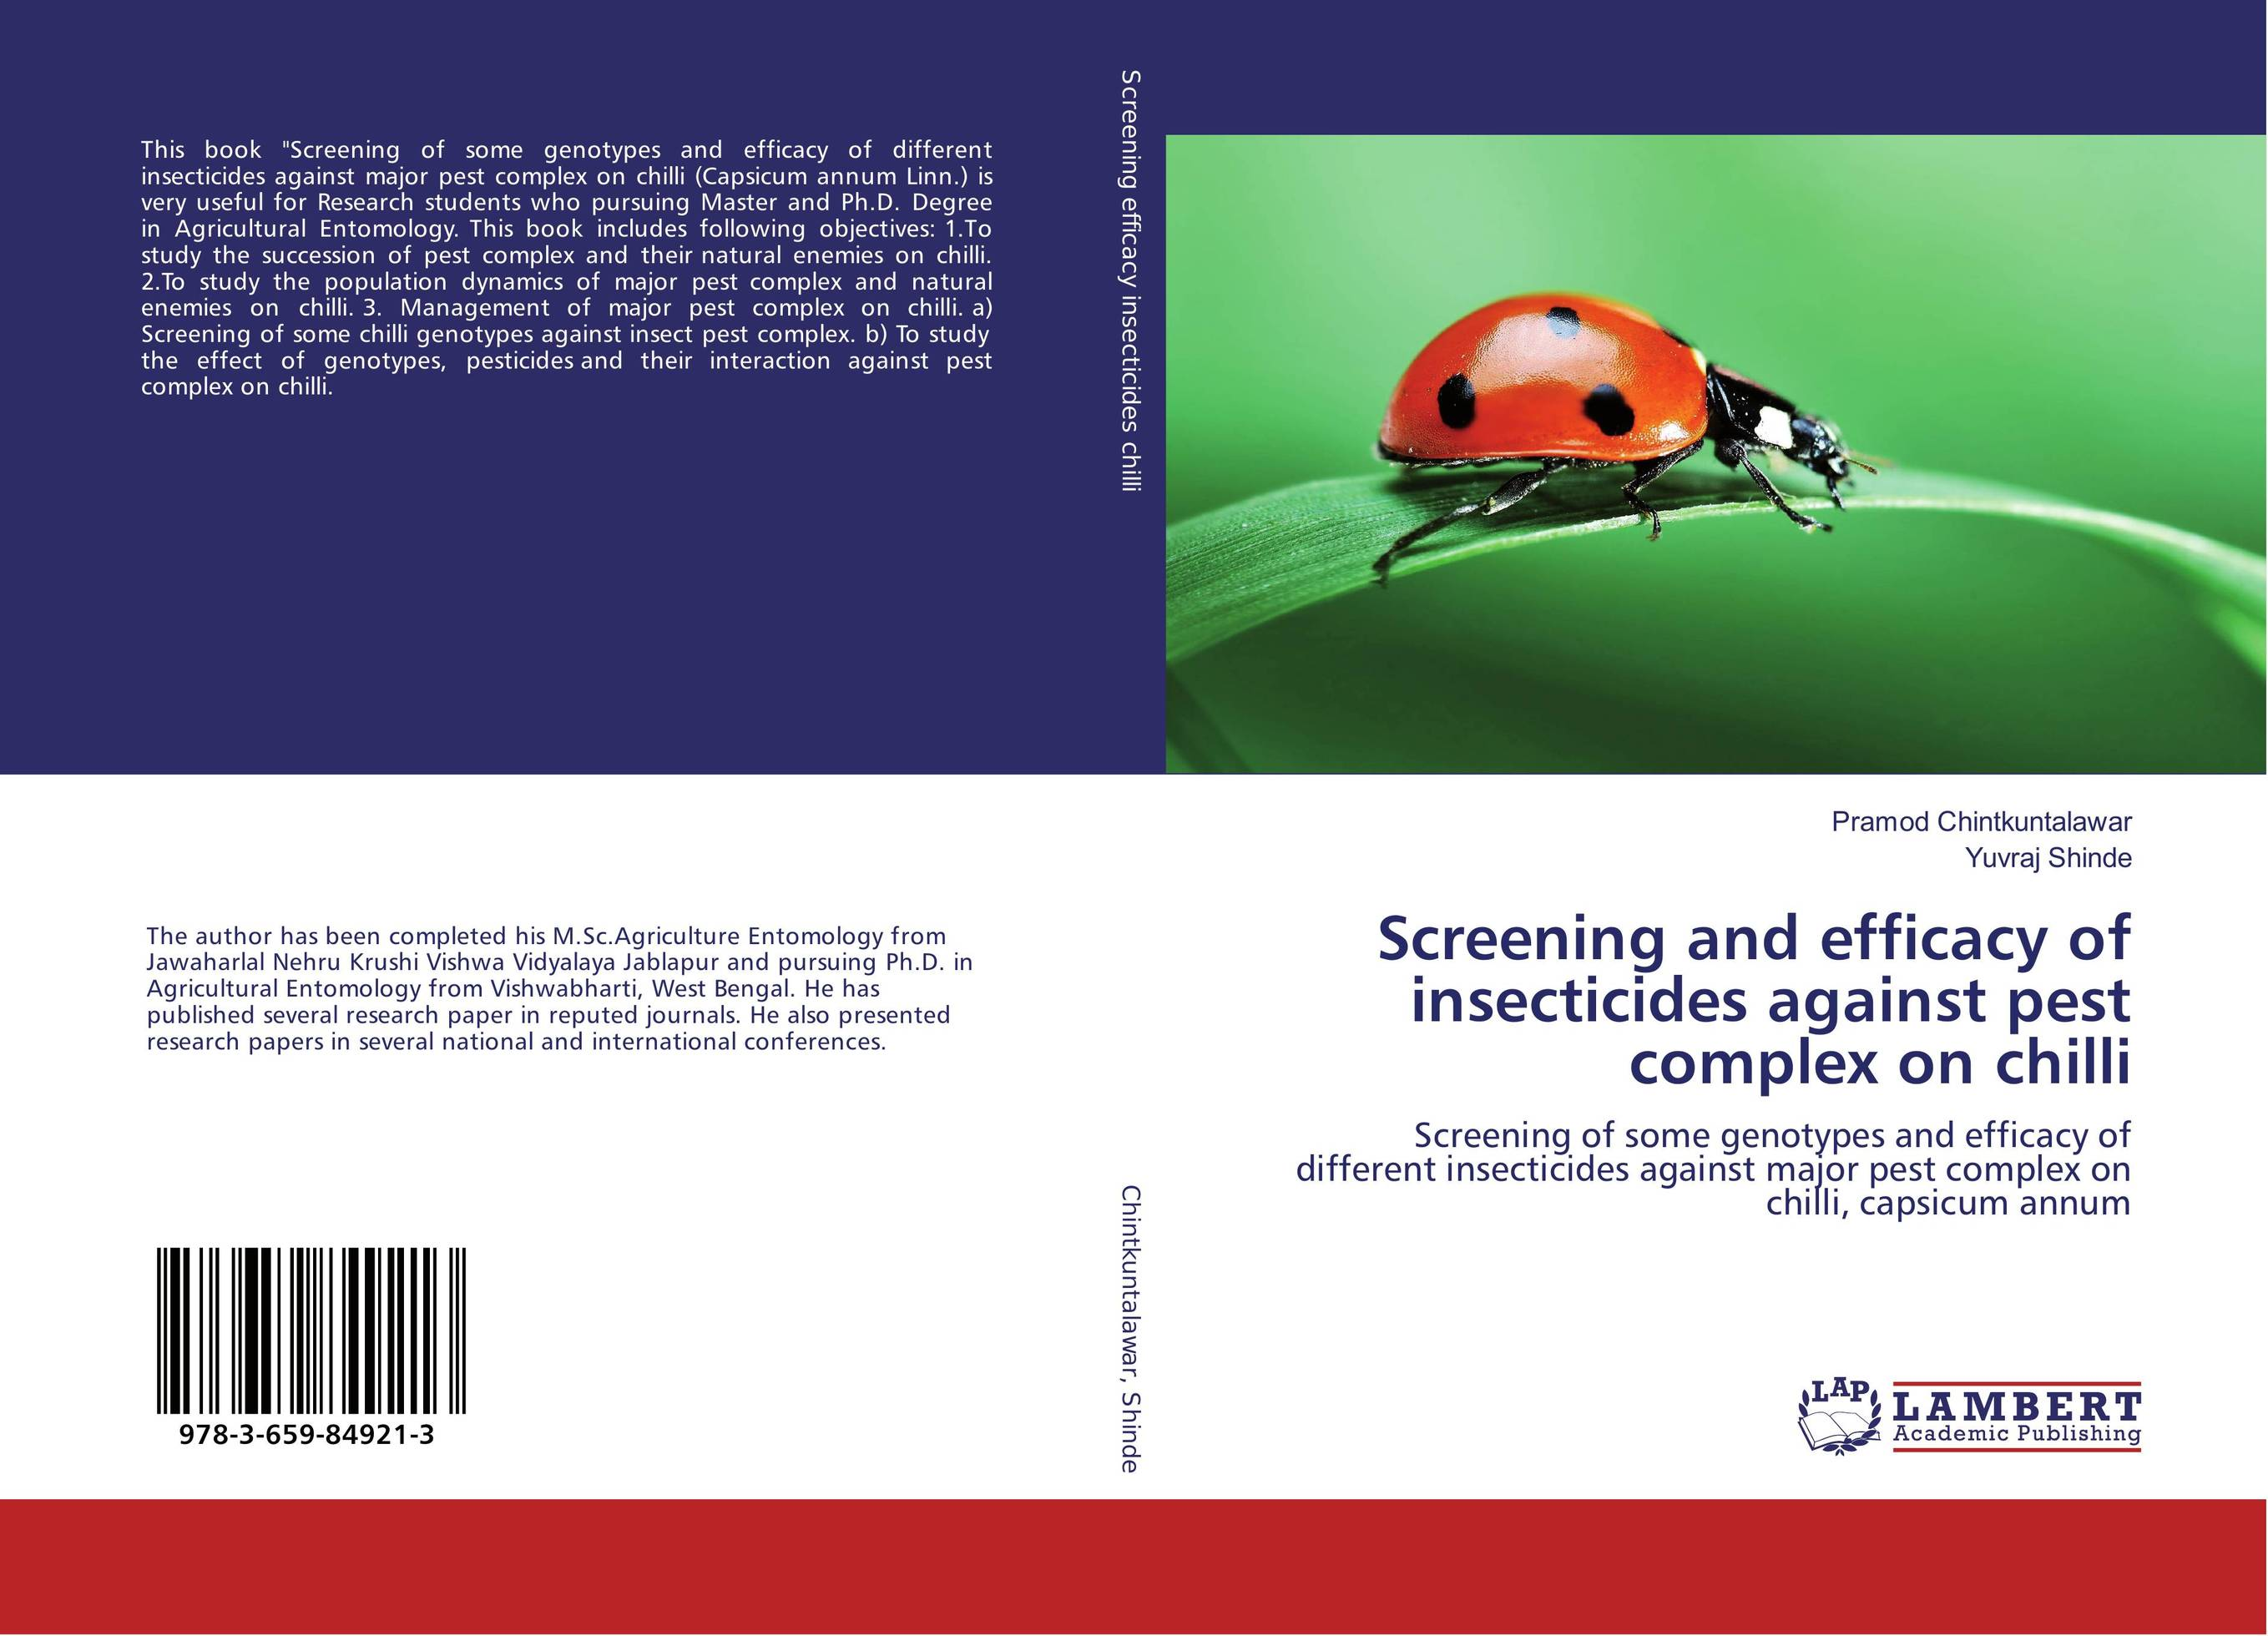 Screening and efficacy of insecticides against pest complex on chilli puthamohan vinayaga moorthi chelliah balasubramanian and afrin larifa efficacy of trichoderma against vector mosquitoes